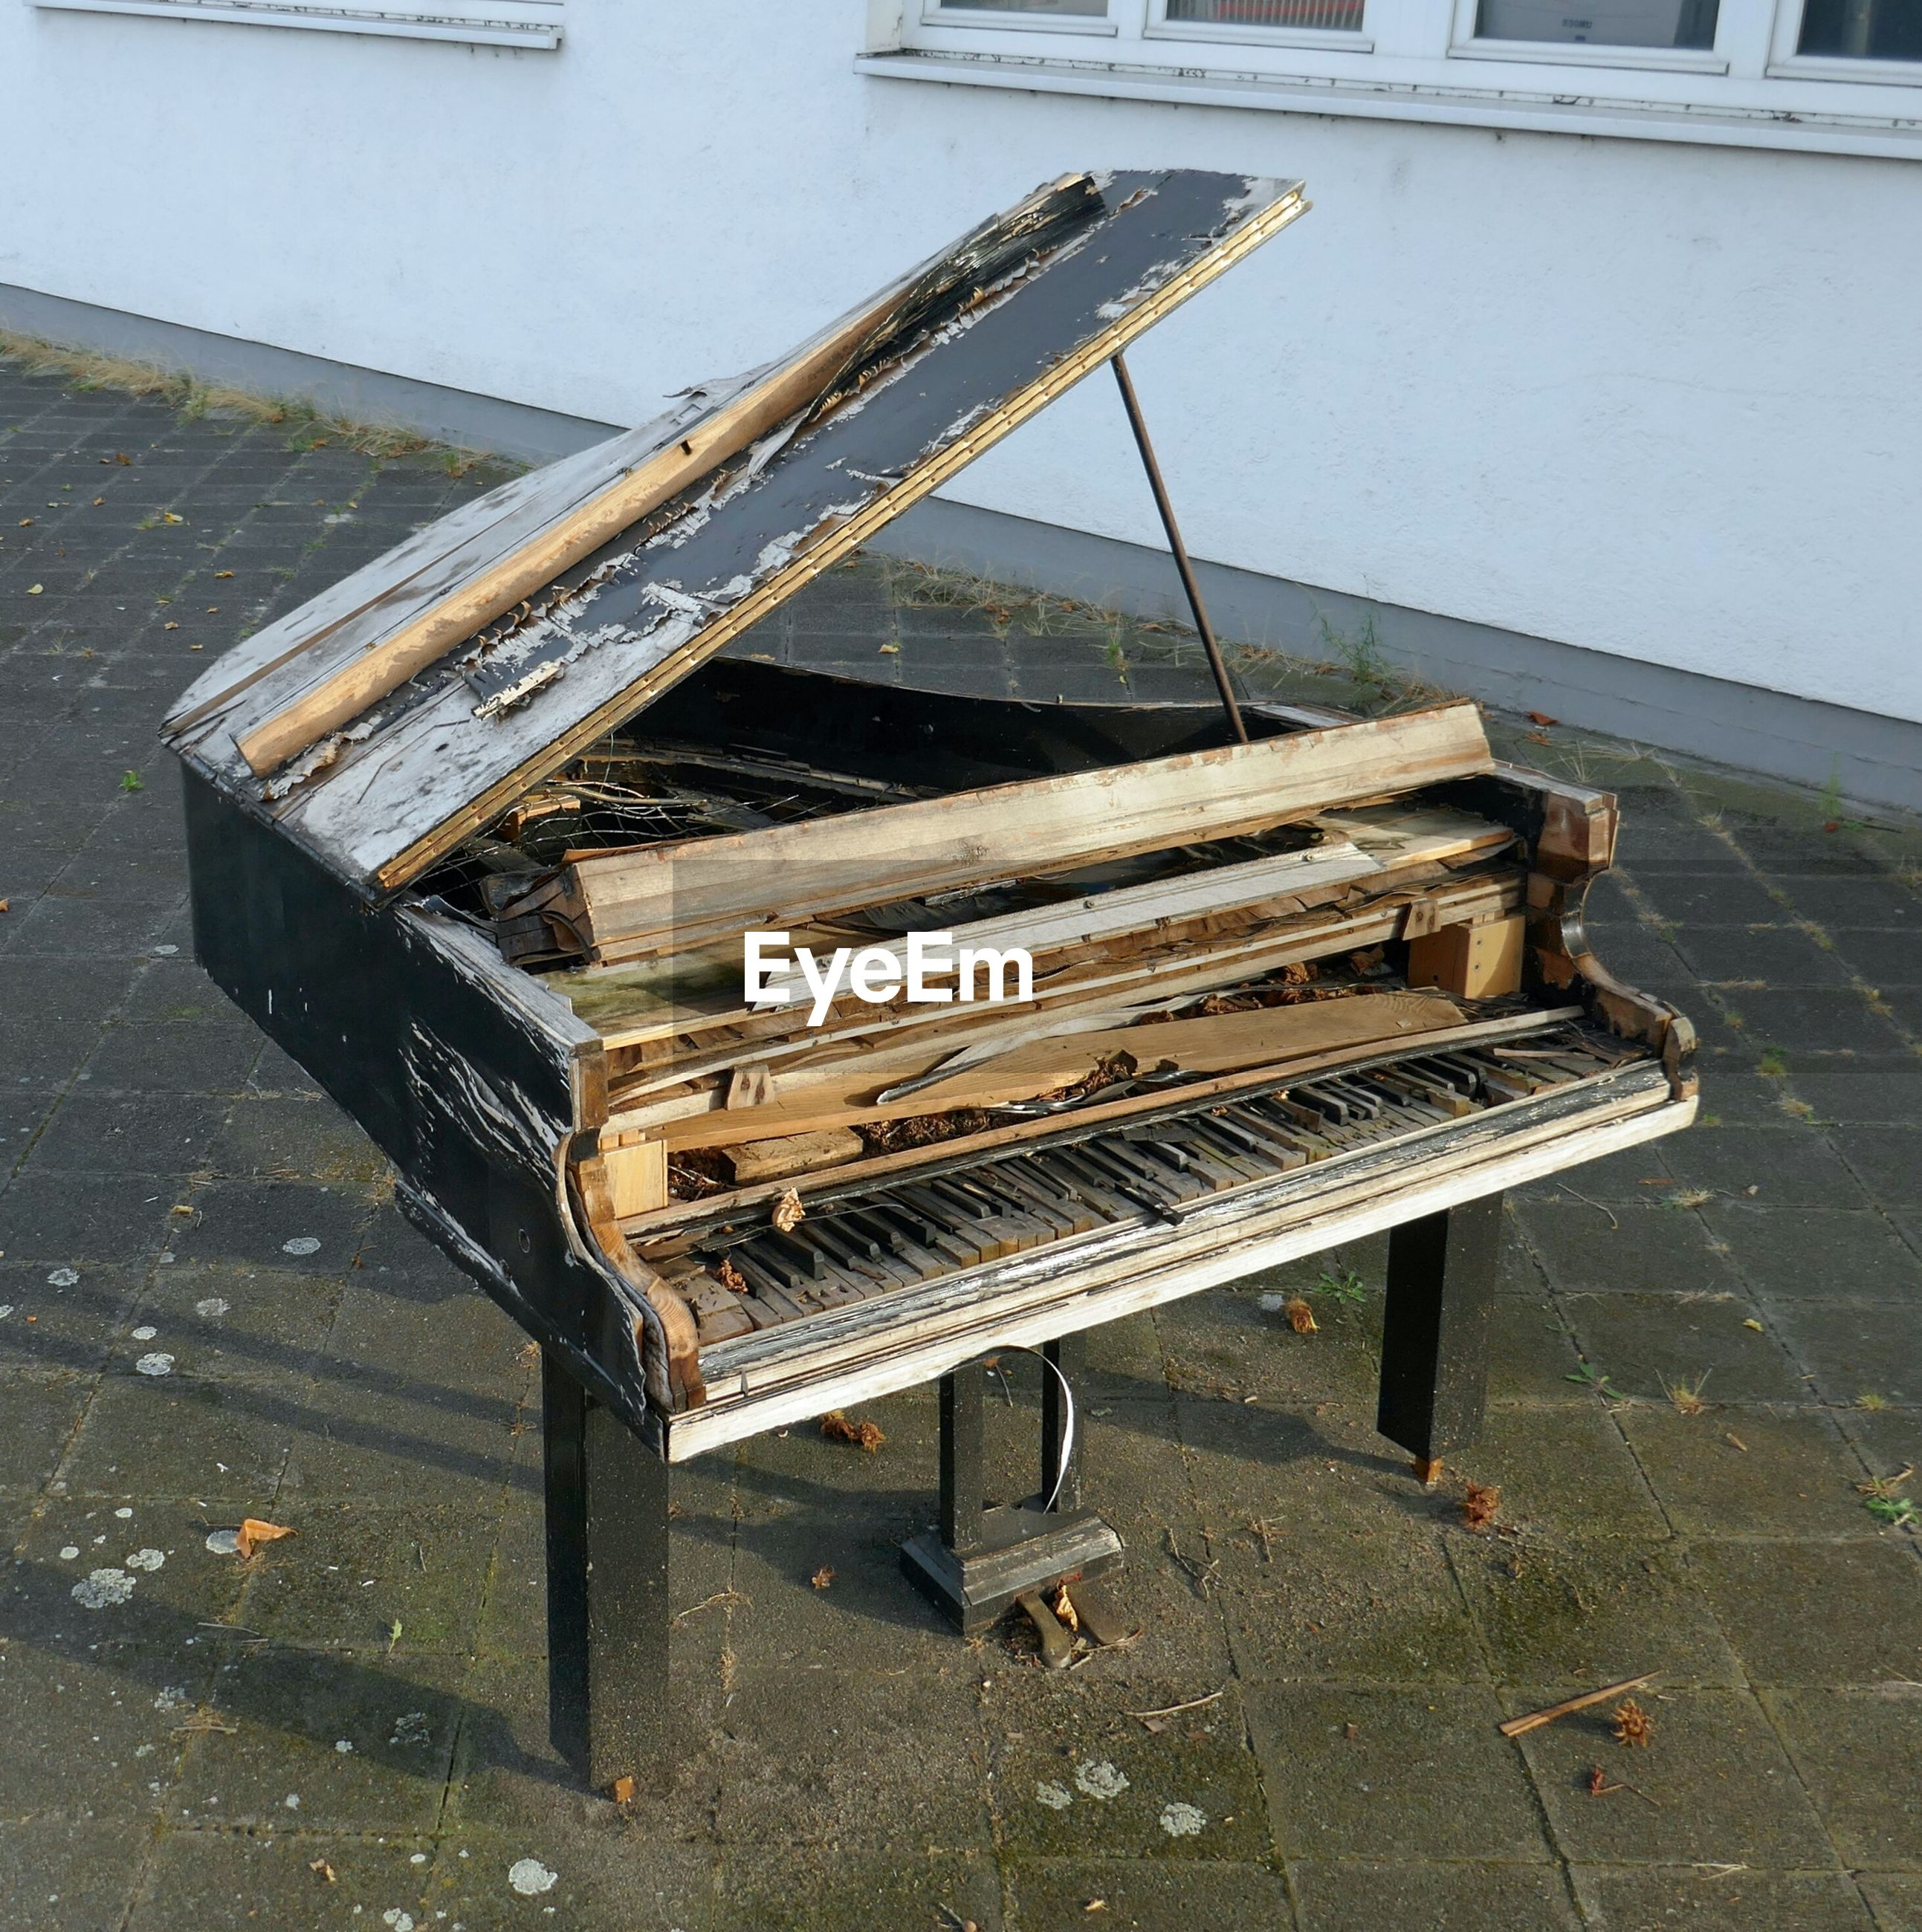 HIGH ANGLE VIEW OF ABANDONED PIANO ON FLOOR